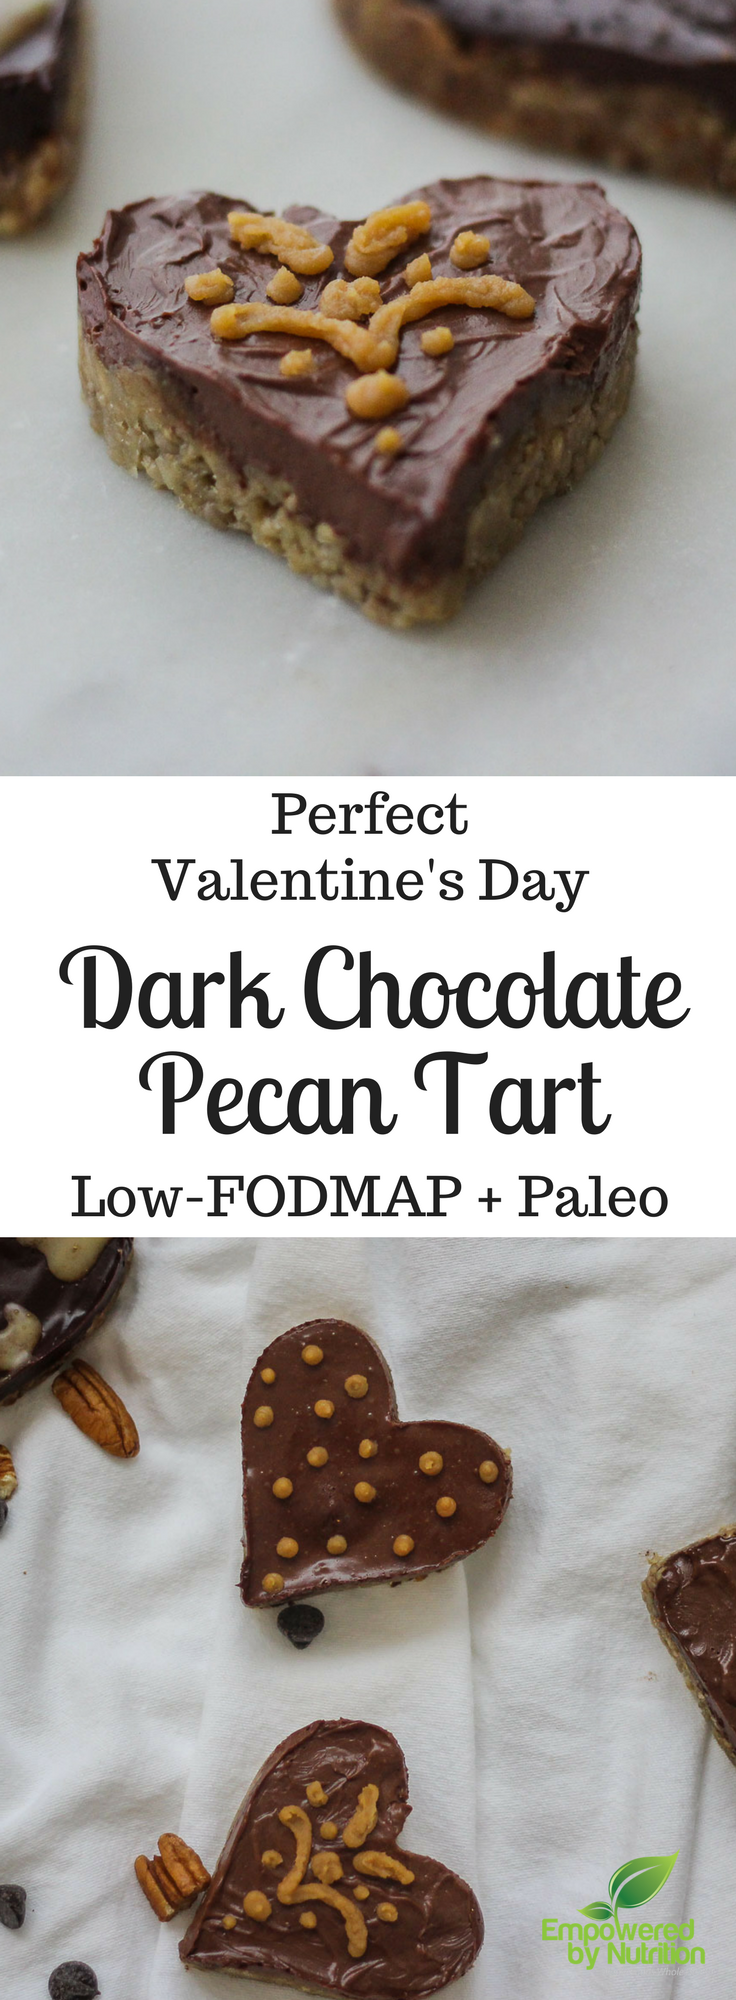 Dark Chocolate Pecan Tart Paleo, Low-FODMAP and Gluten-free-Perfect for Valentine's Day